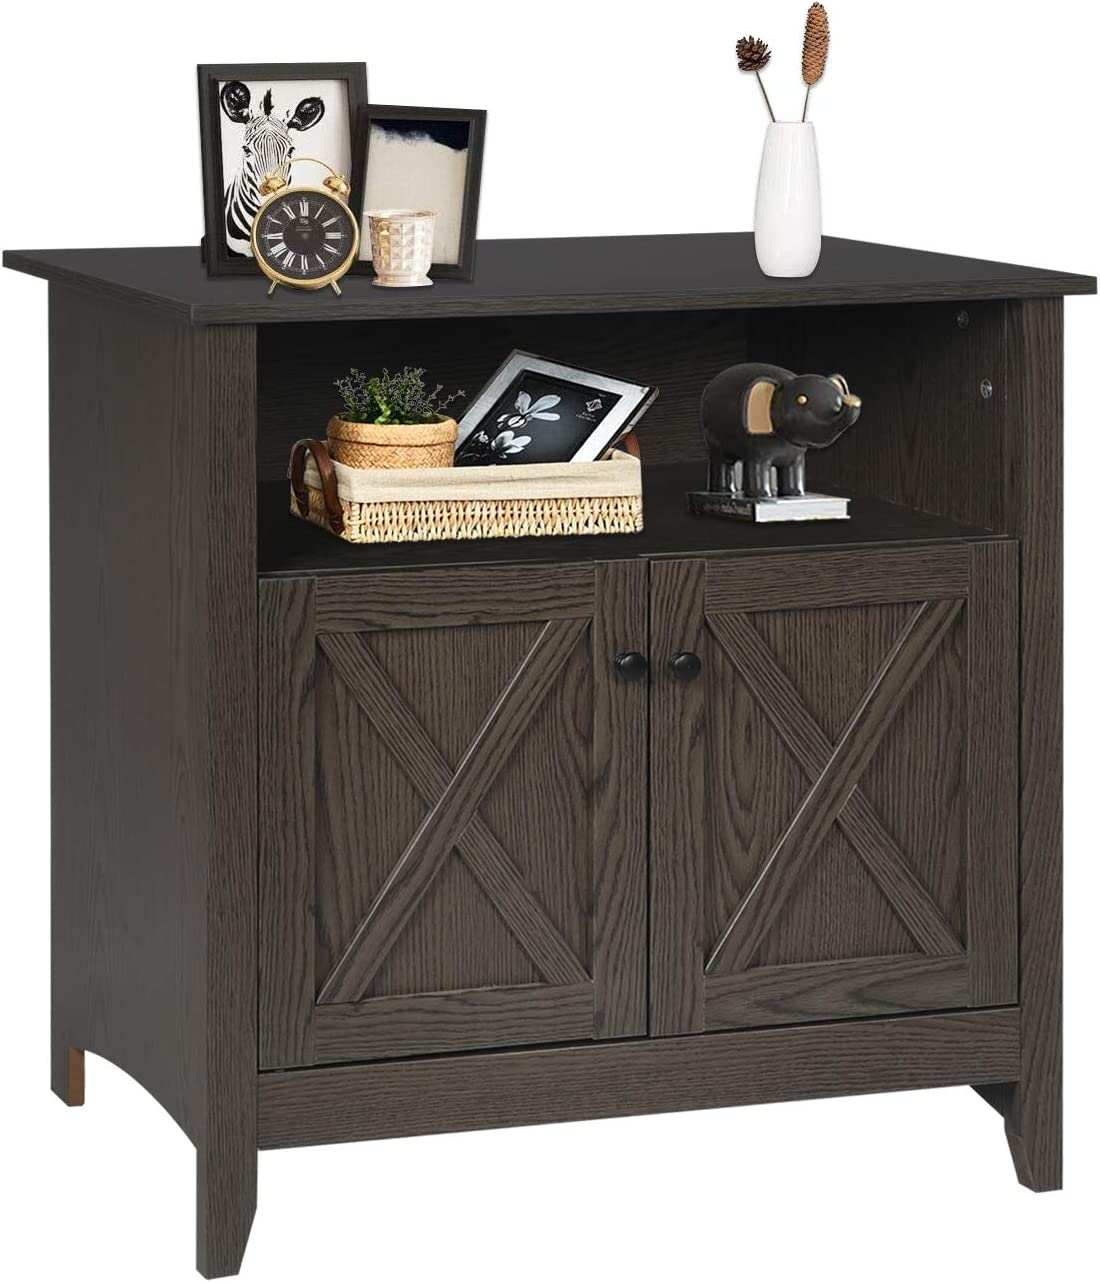 SGHB Accent Cabinet with Spring new work Adjustable Doors Sideboard 2021new shipping free shipping Storage